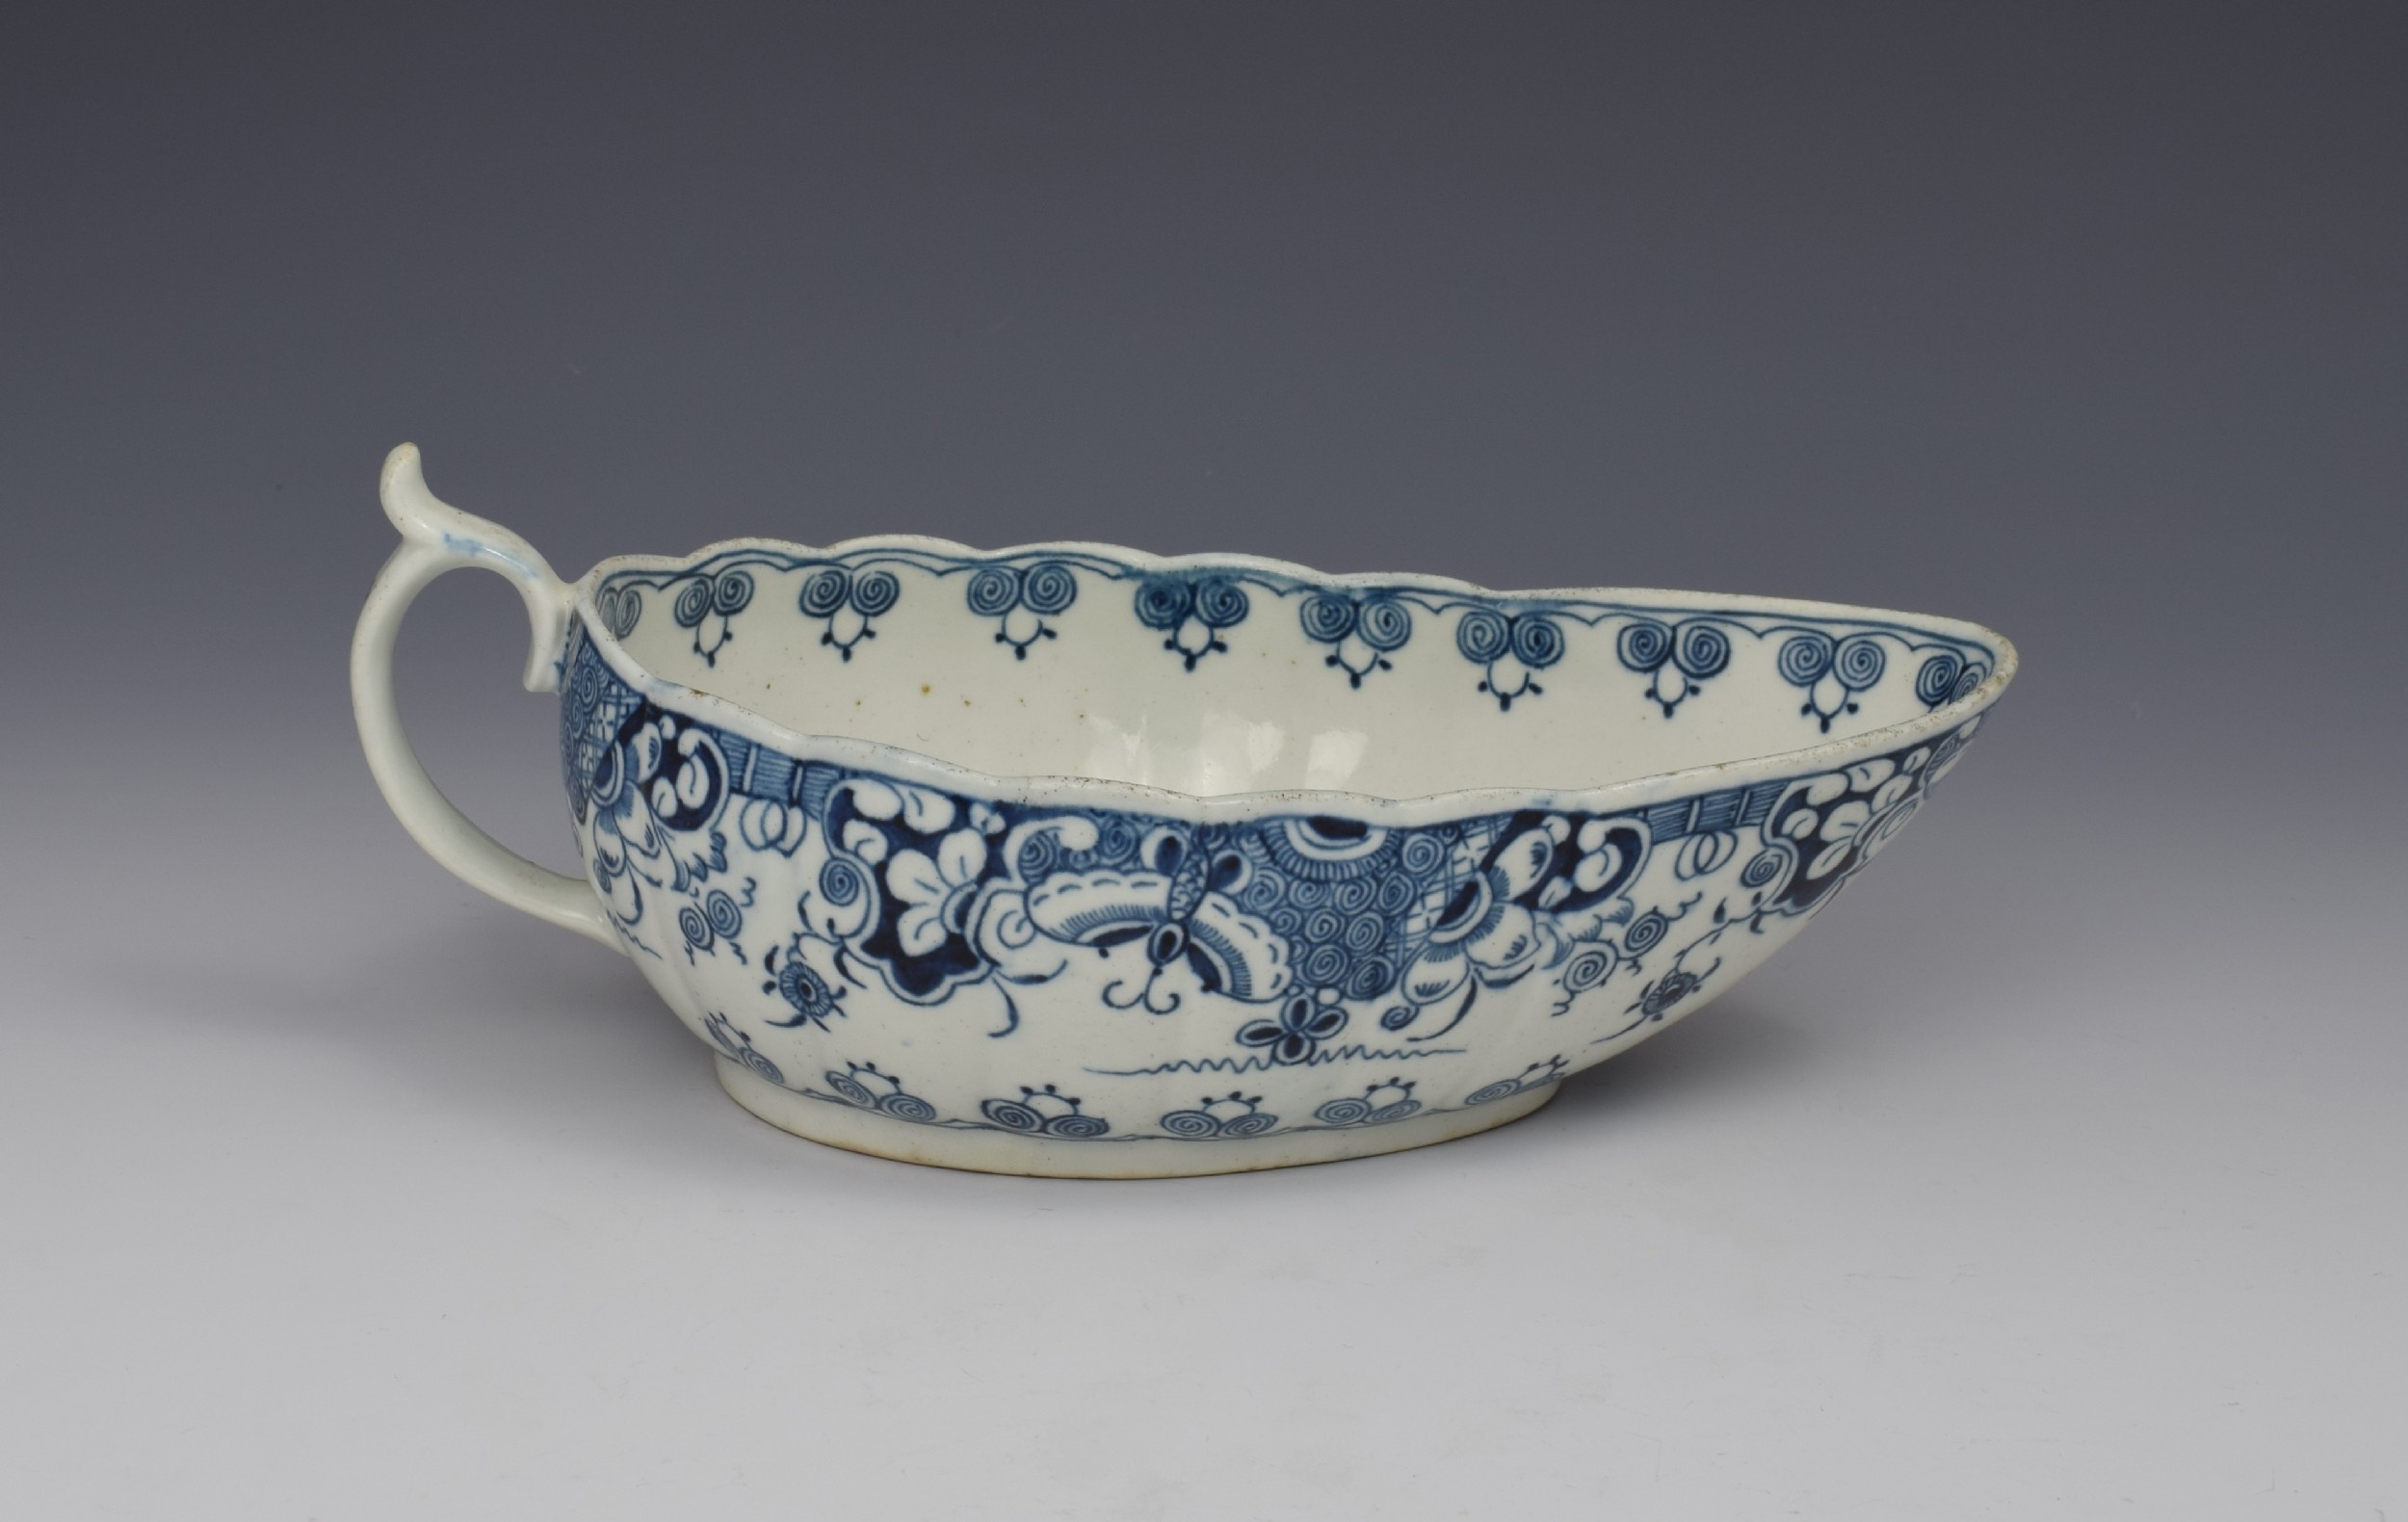 first period worcester sauceboat doughnut tree pattern c1775 sauce boat